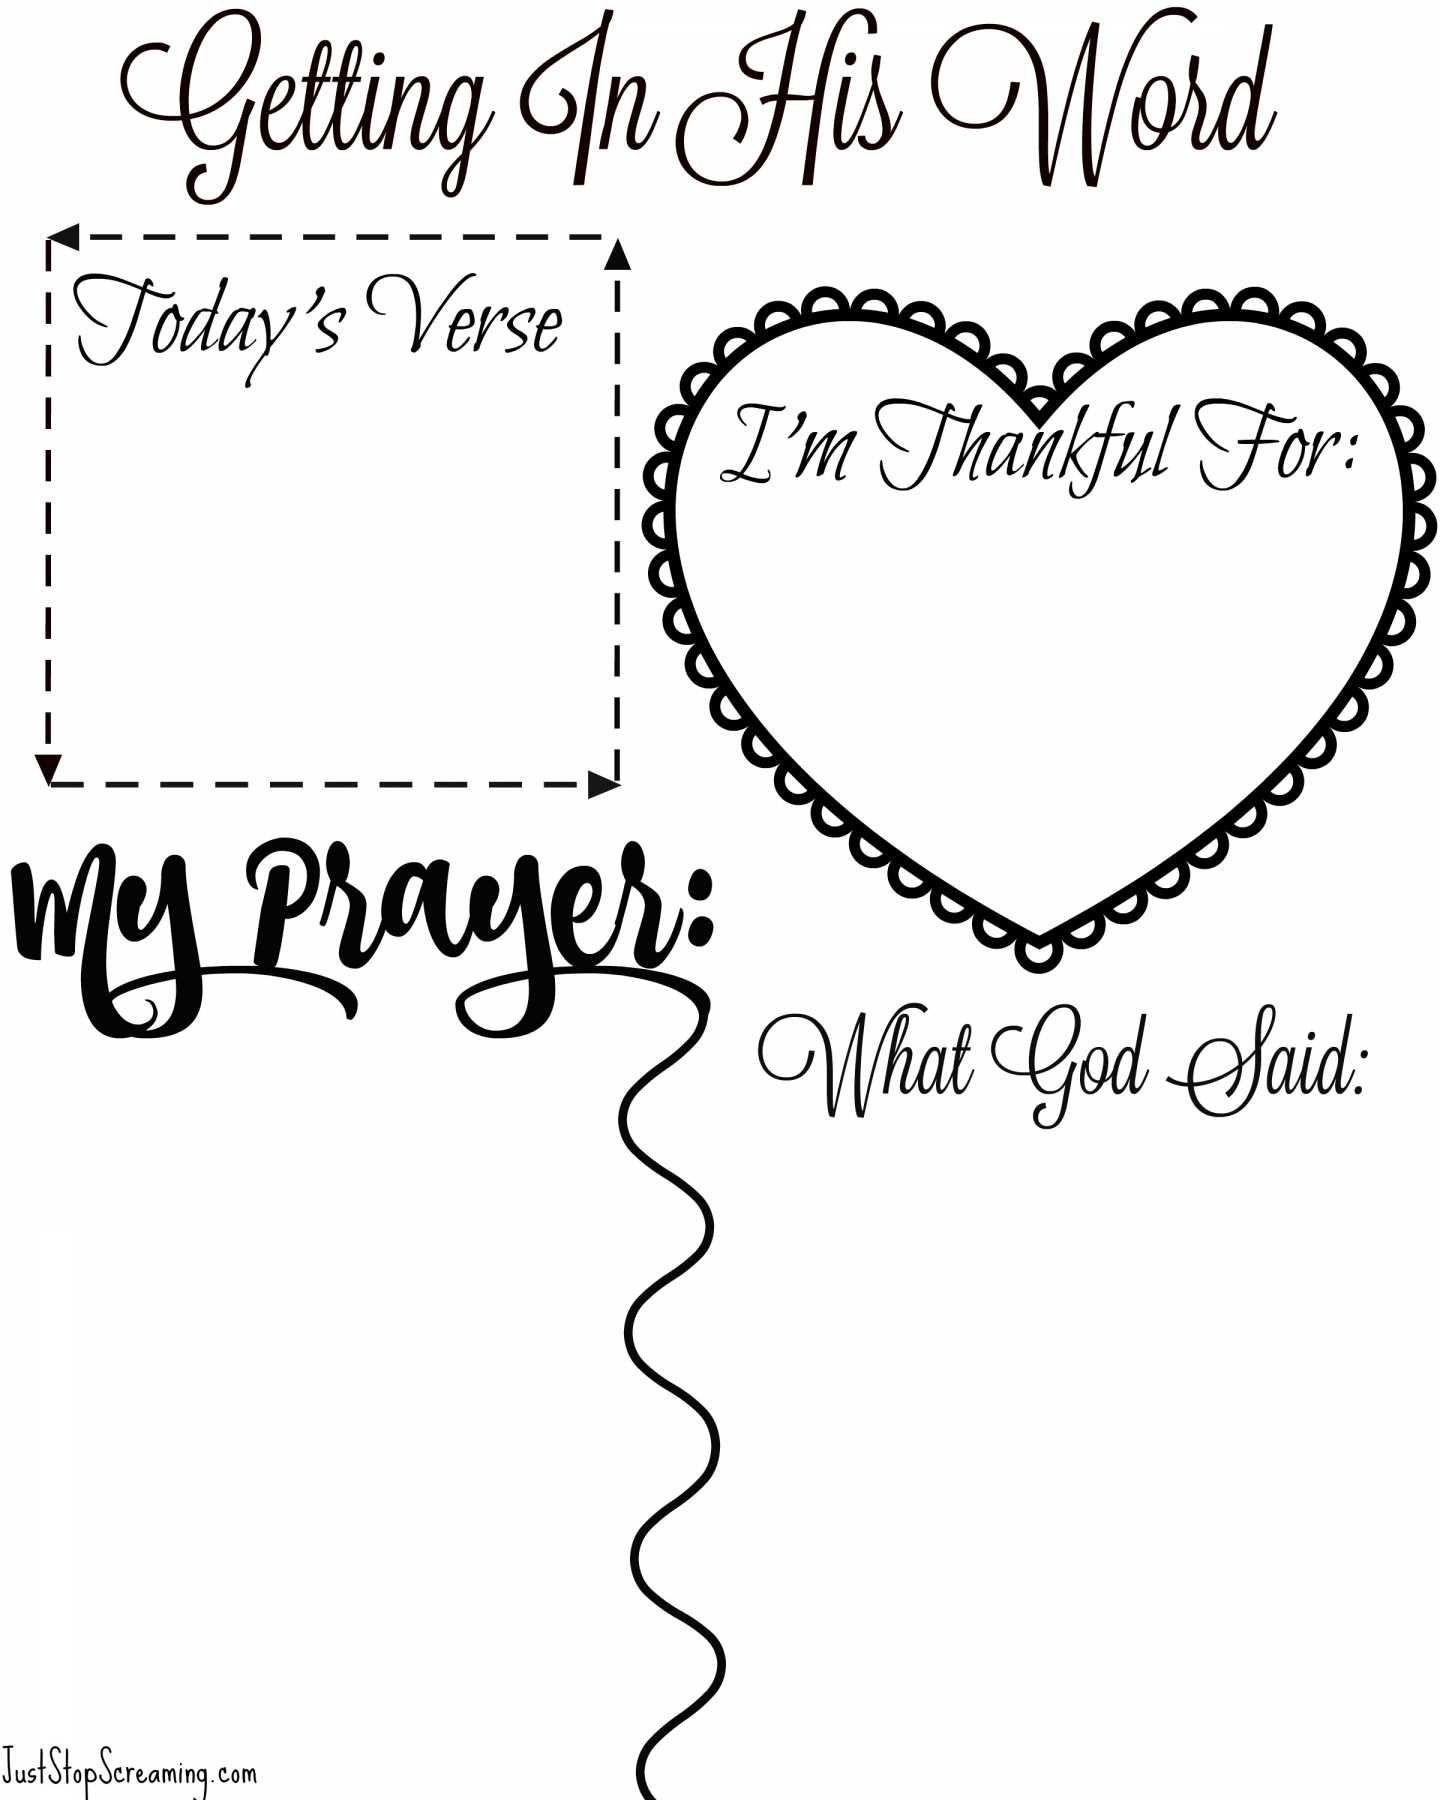 Kids Bible Study Worksheets Free Bible Study Printable For Adults - Free Printable Bible Study Worksheets For Adults